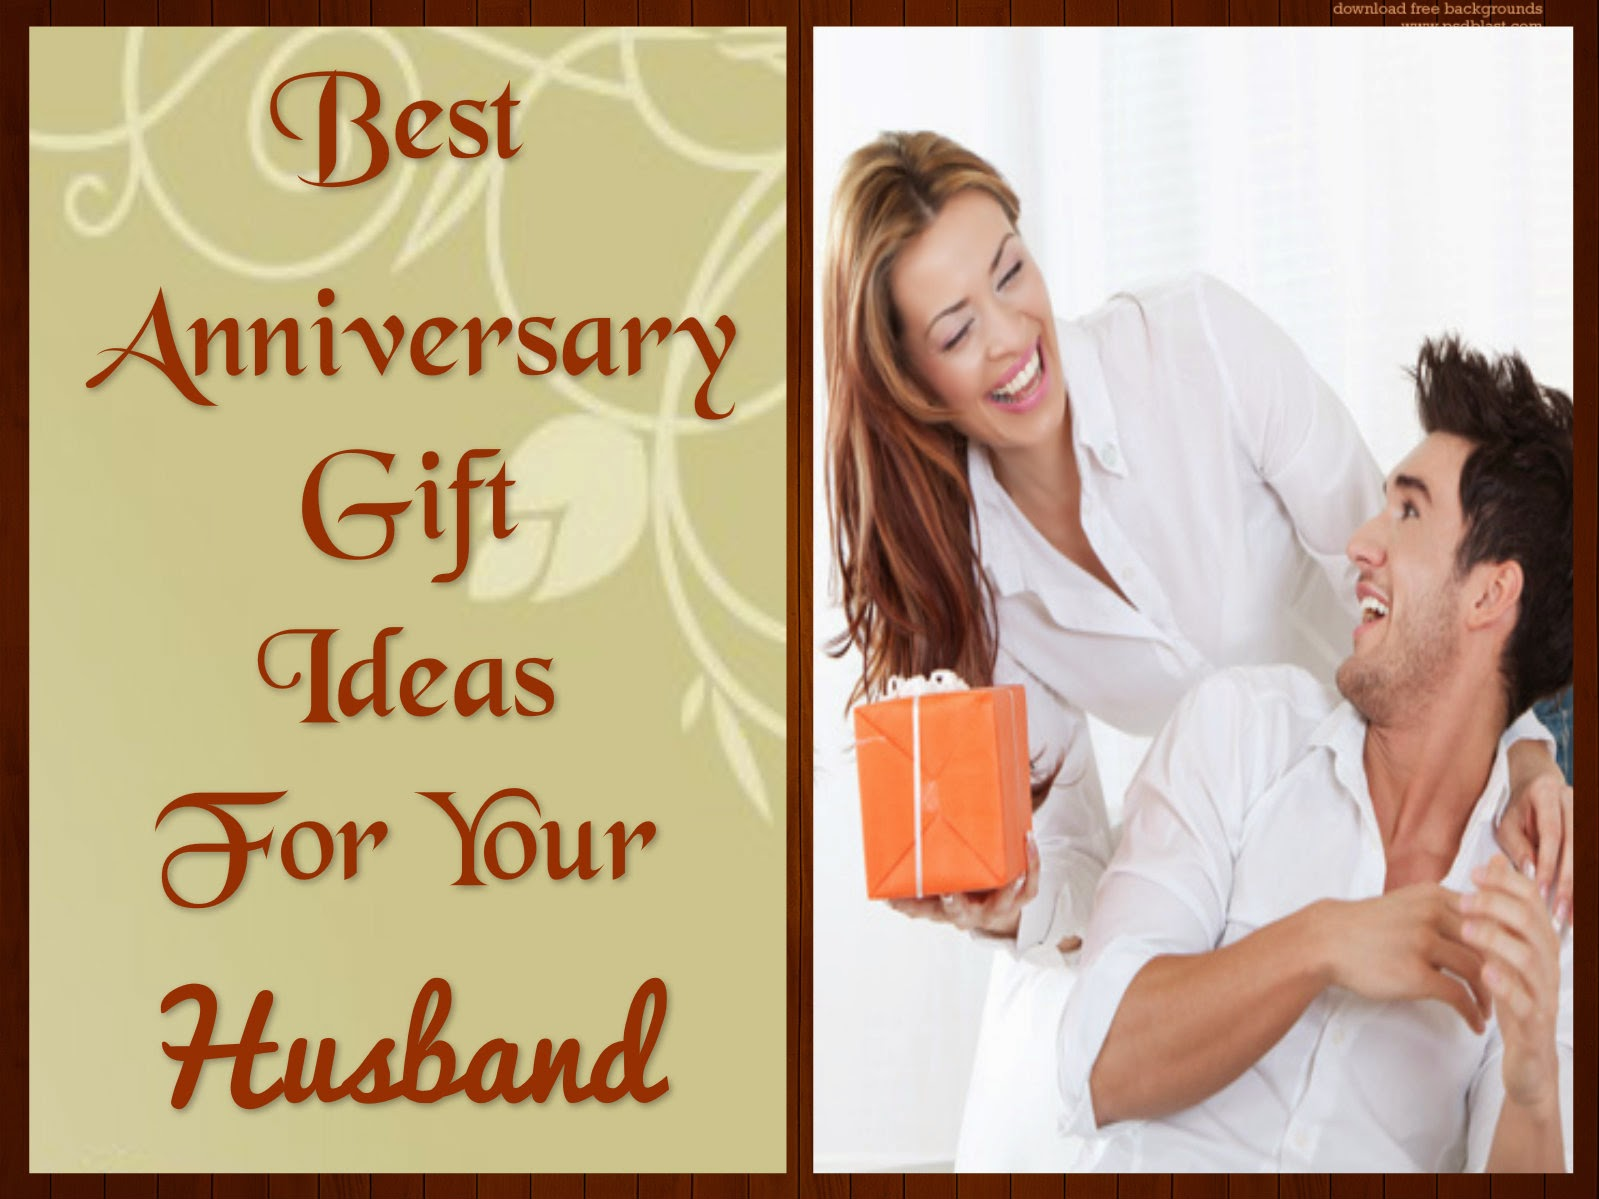 Wedding Anniversary Present Ideas Husband : Wedding Anniversary Gifts: Best Anniversary Gift Ideas For Your ...